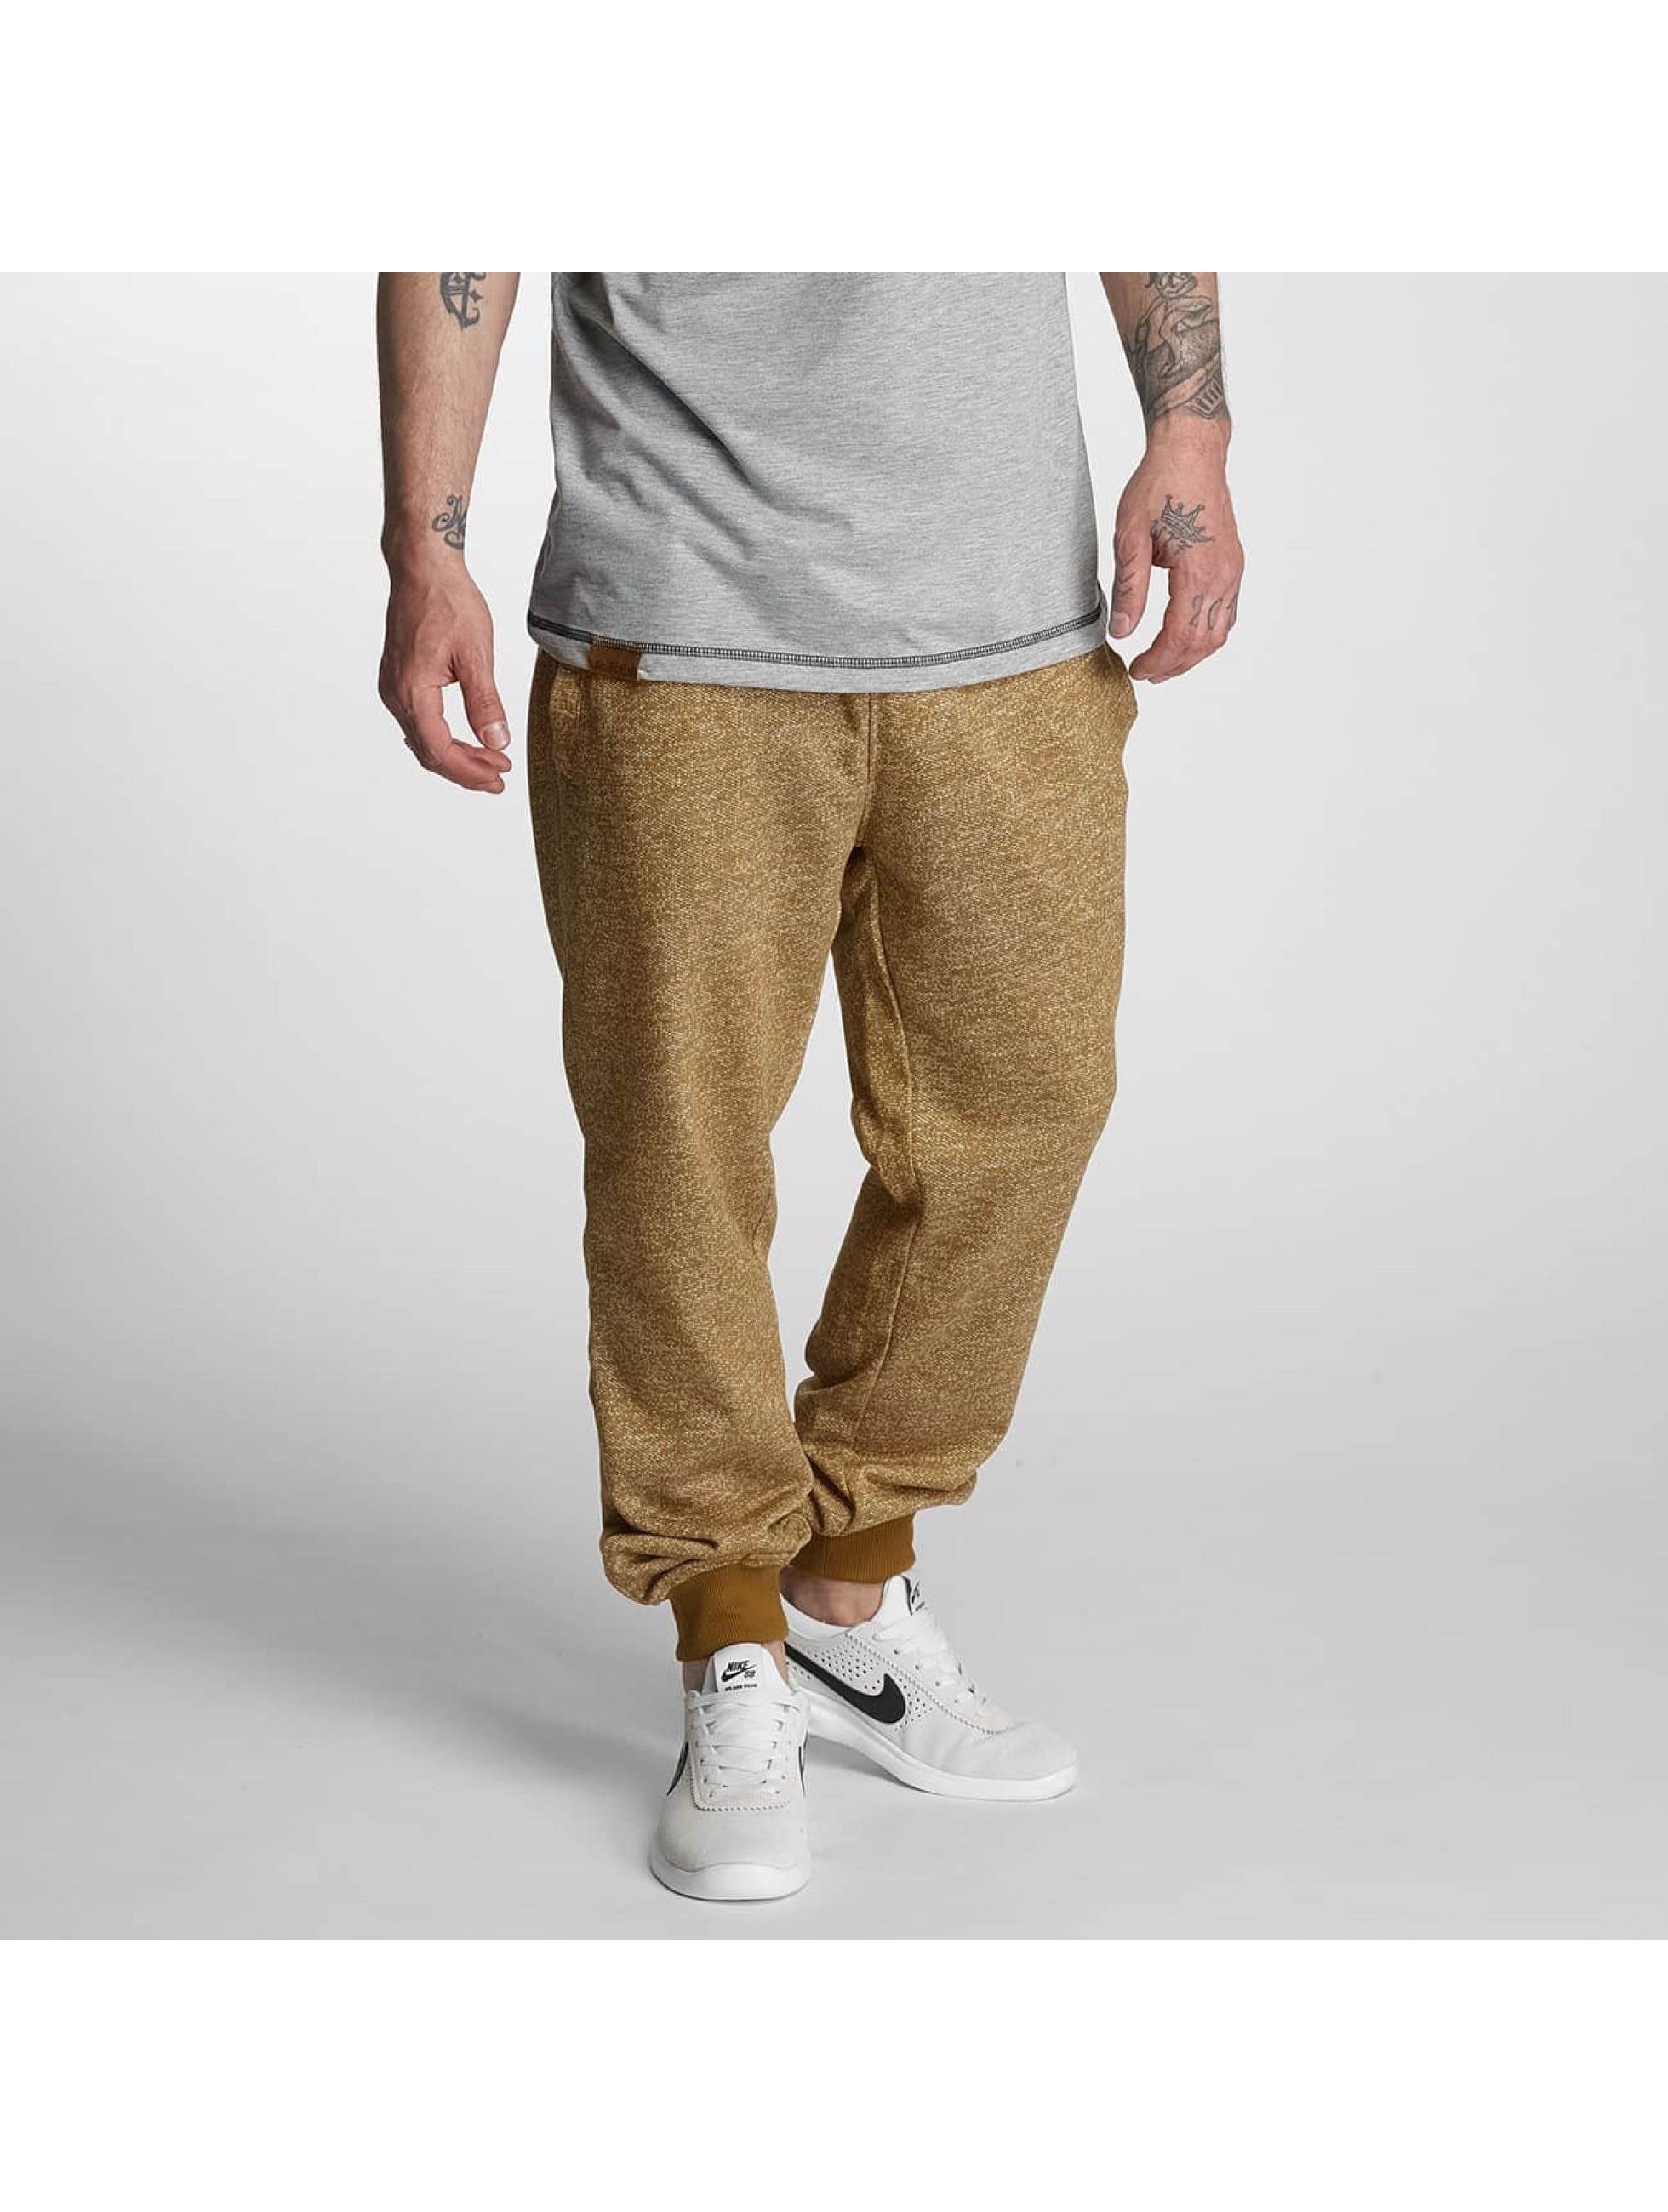 Southpole Männer Jogginghose Sweat in beige